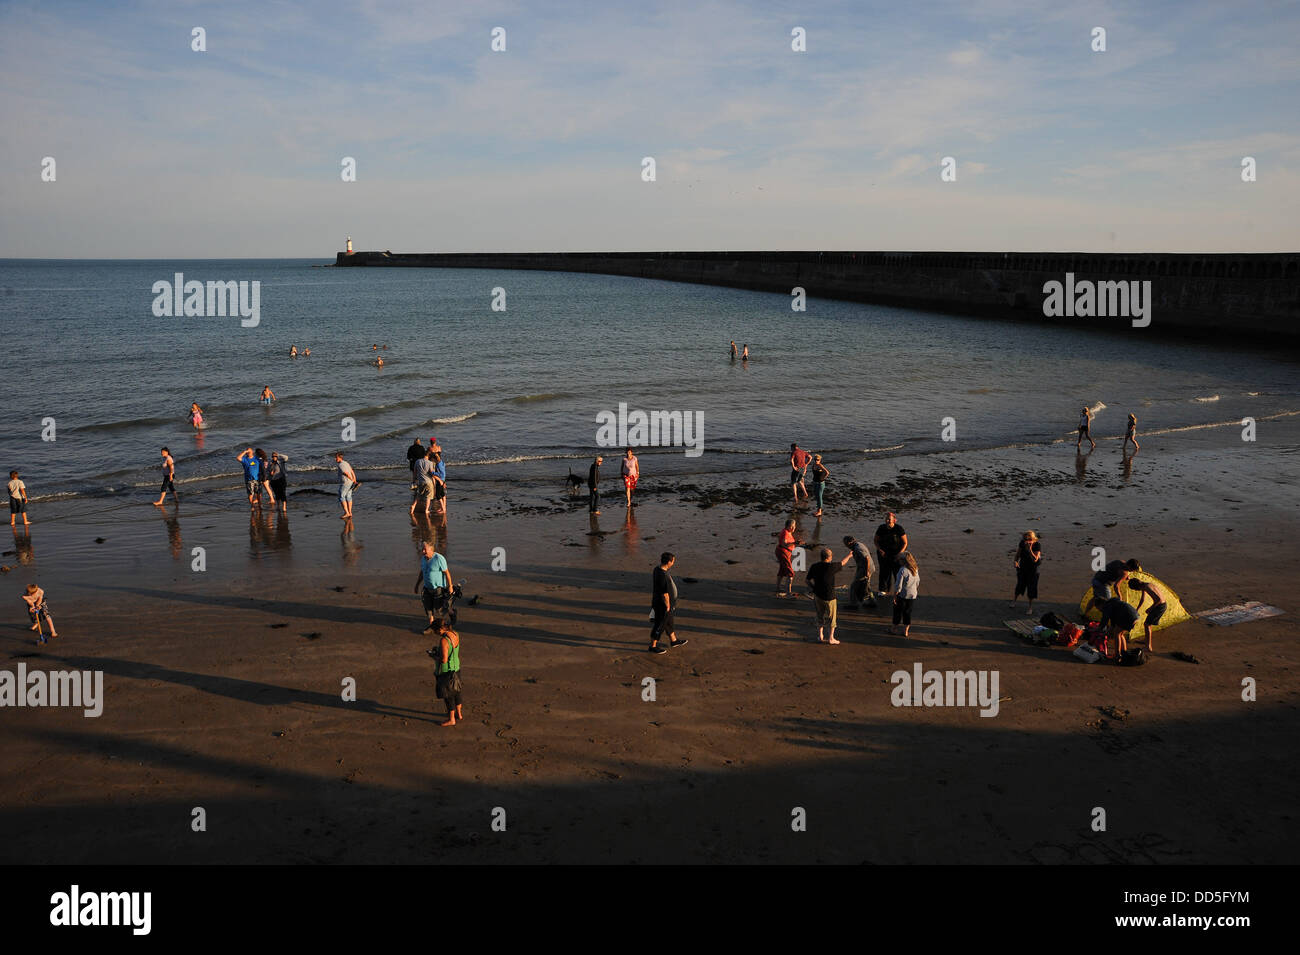 Newhaven, Sussex, UK. 26 Aug, 2013. Local residents from Newhaven enjoy the bank holiday on the closed off beach - Stock Image